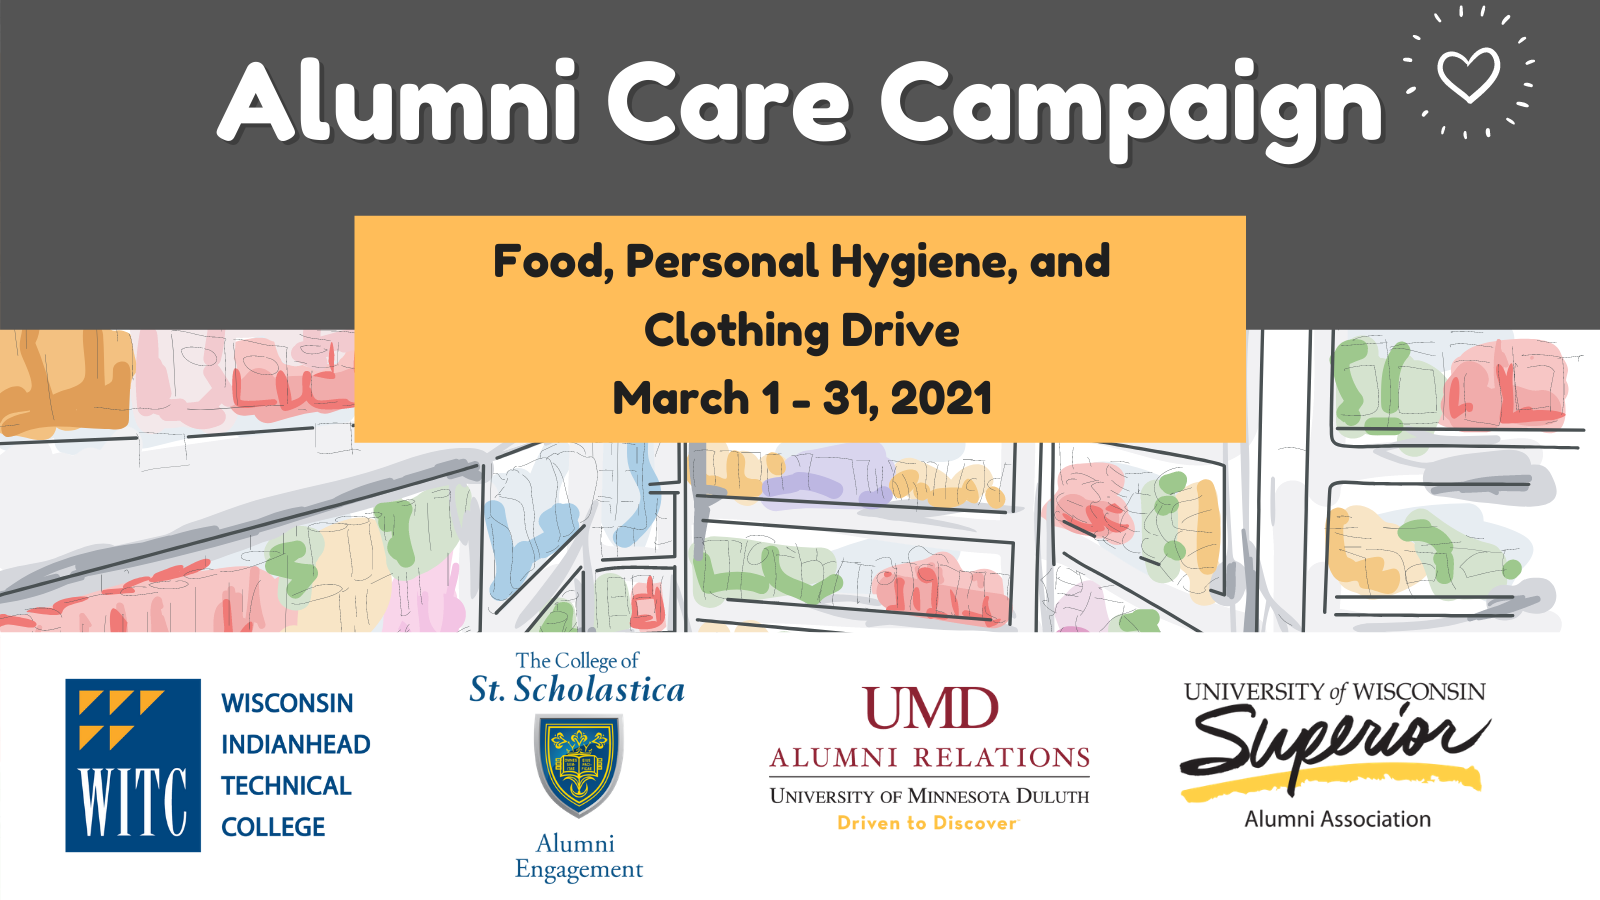 Alumni Care Campaign, Food Personal Hygiene and Clothing Drive on March 1st to the 31st